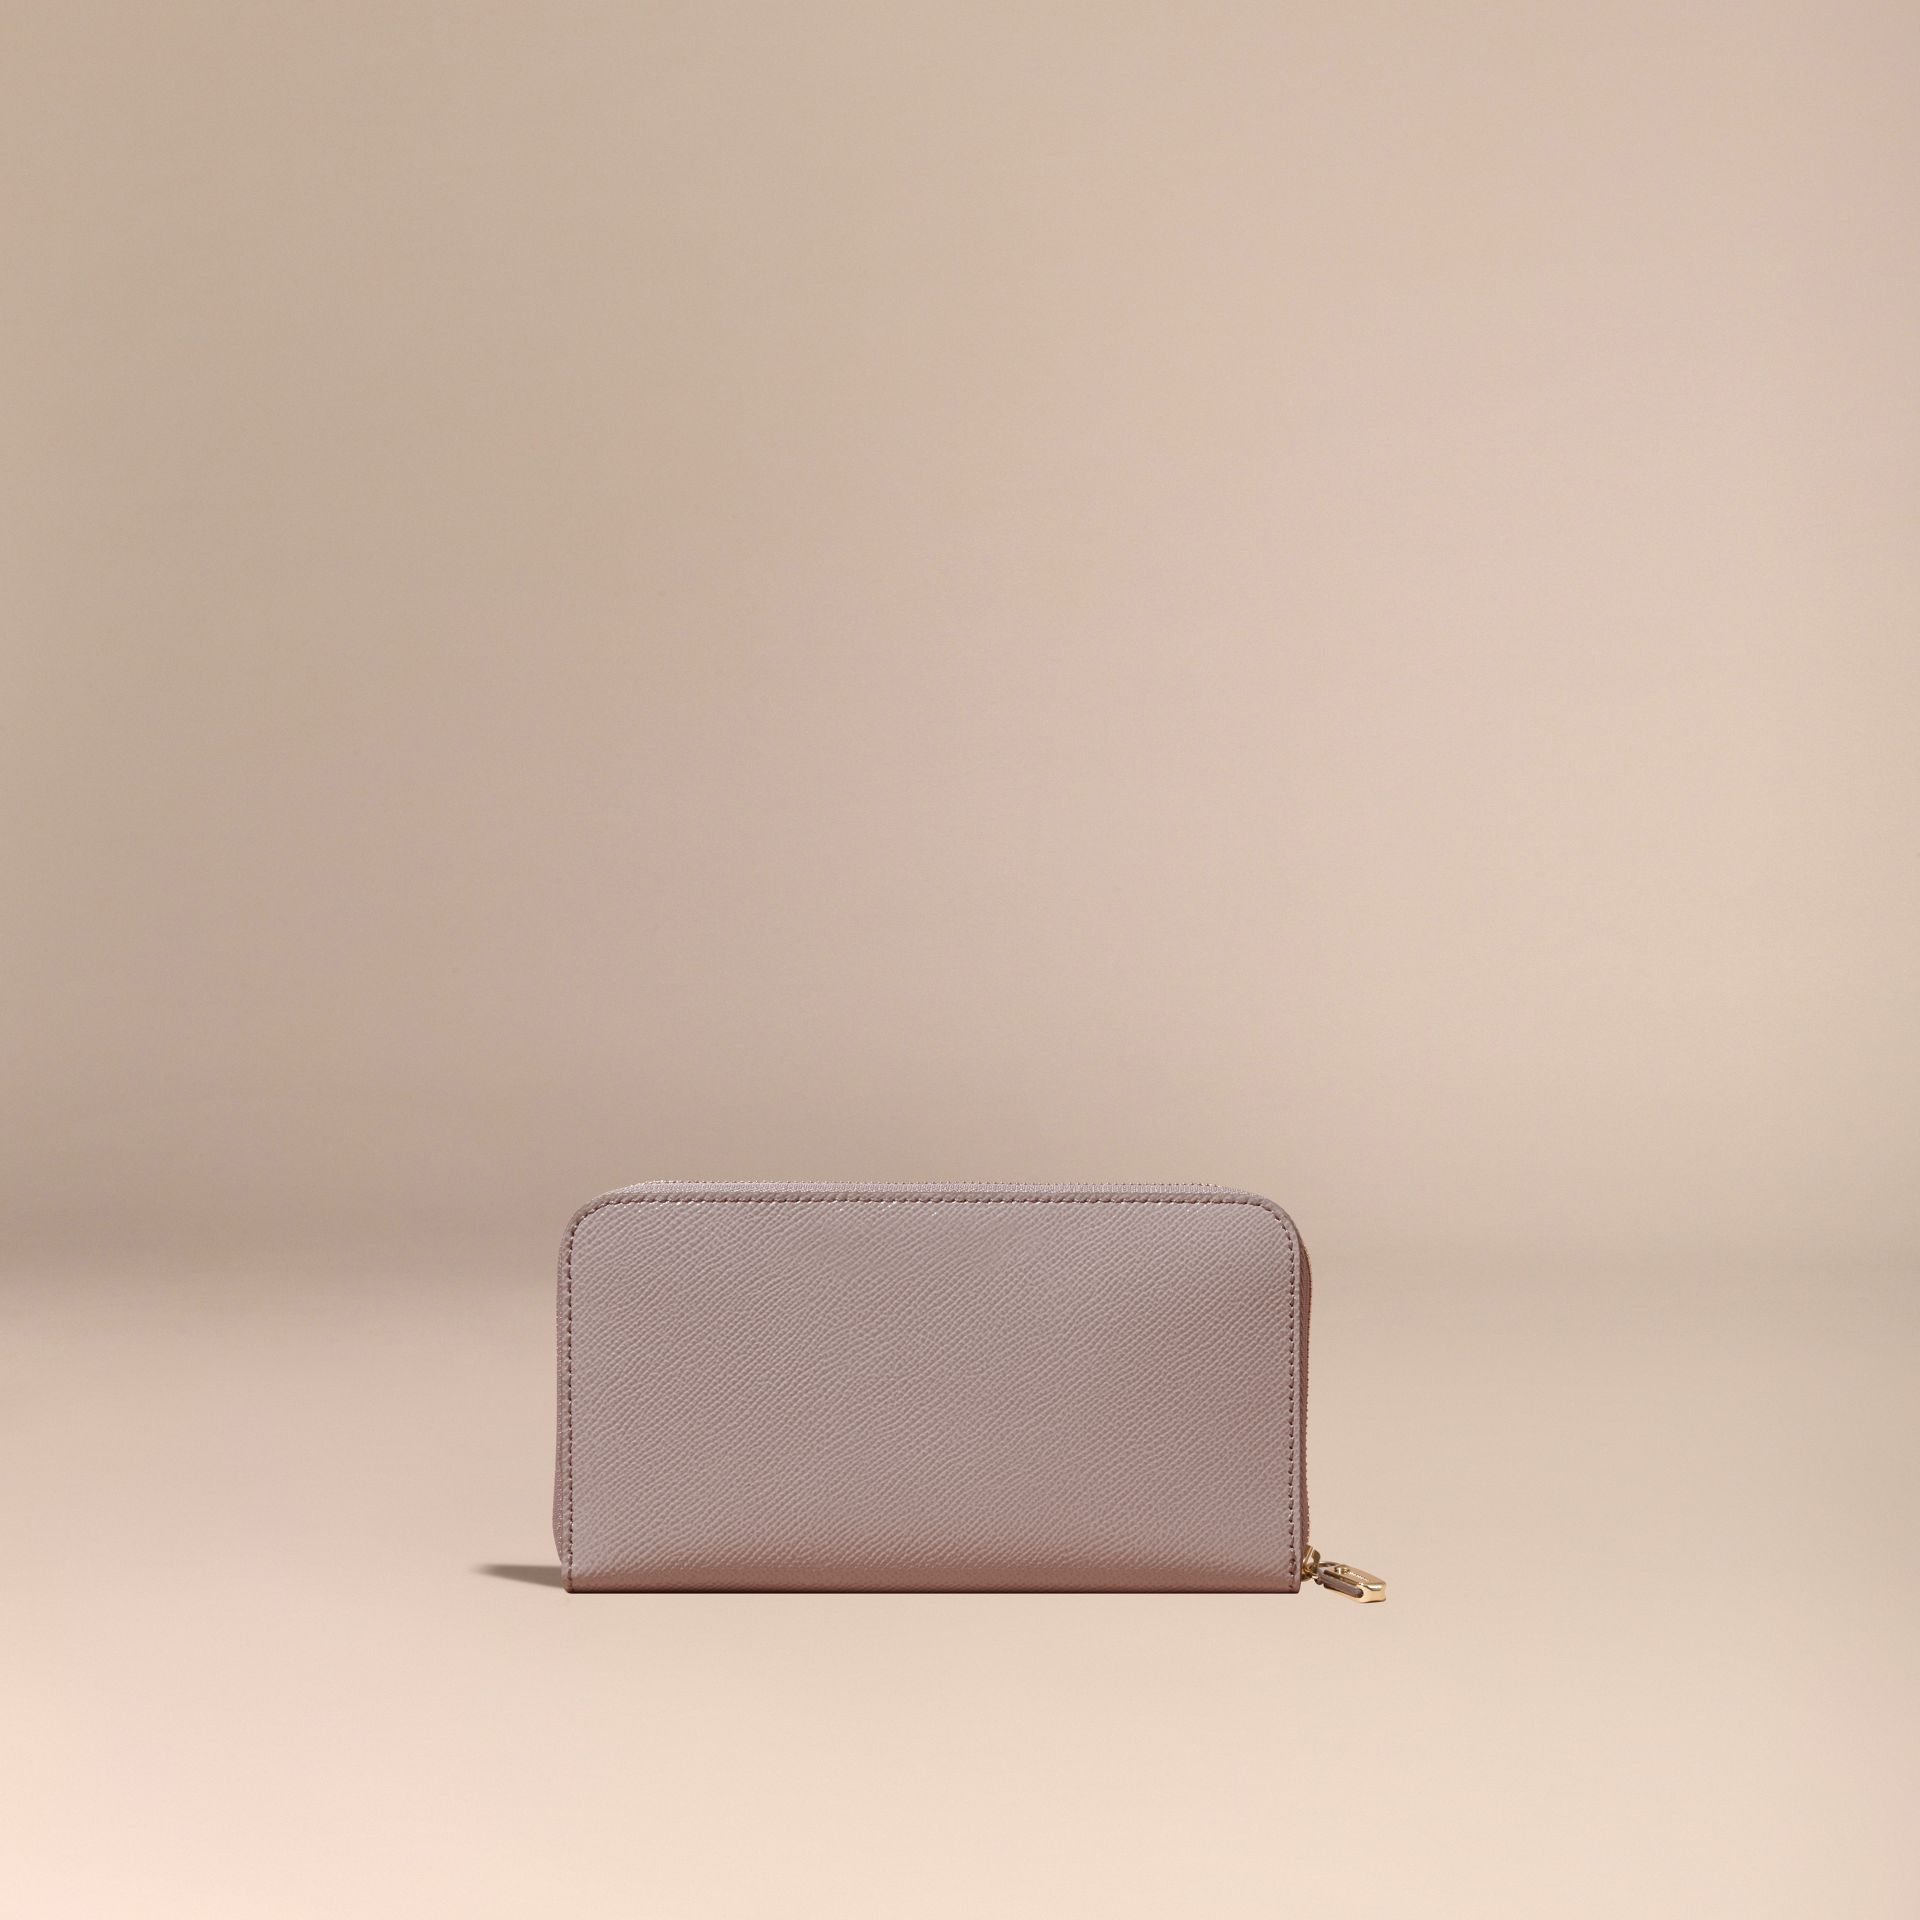 Pale grey Patent London Leather Ziparound Wallet Pale Grey - gallery image 4